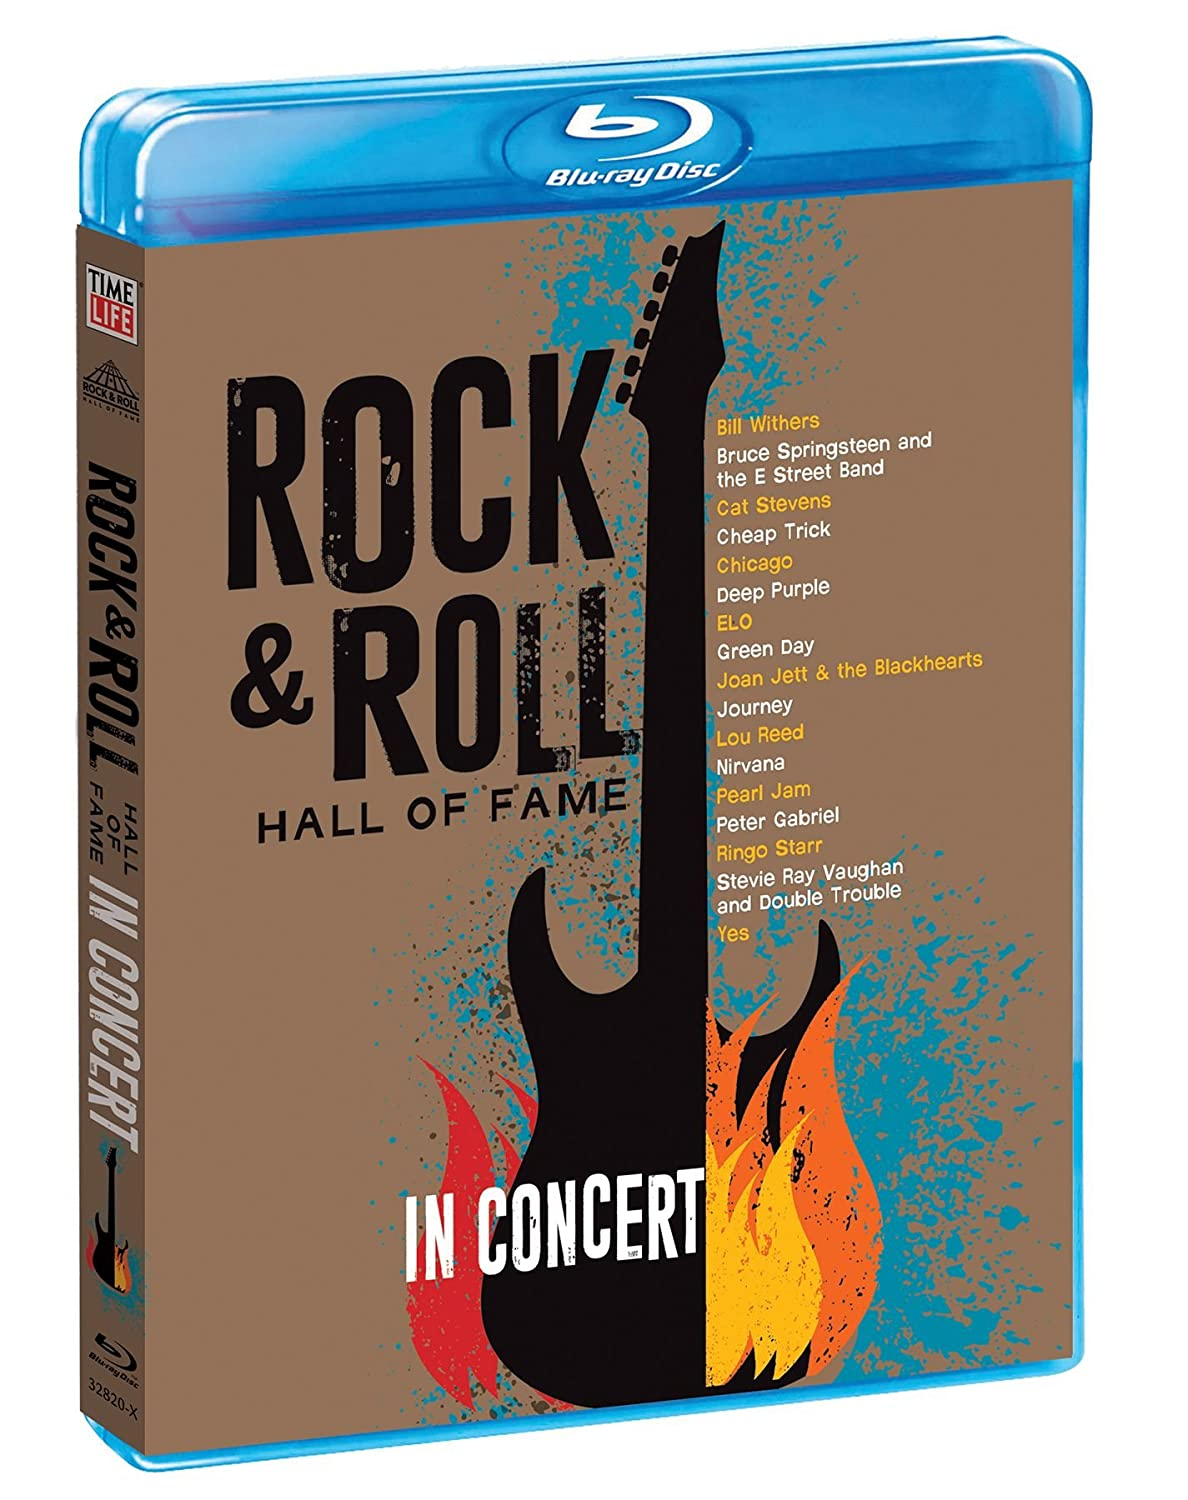 Amazon.com: The Rock And Roll Hall Of Fame: In Concert [Blu-ray ...